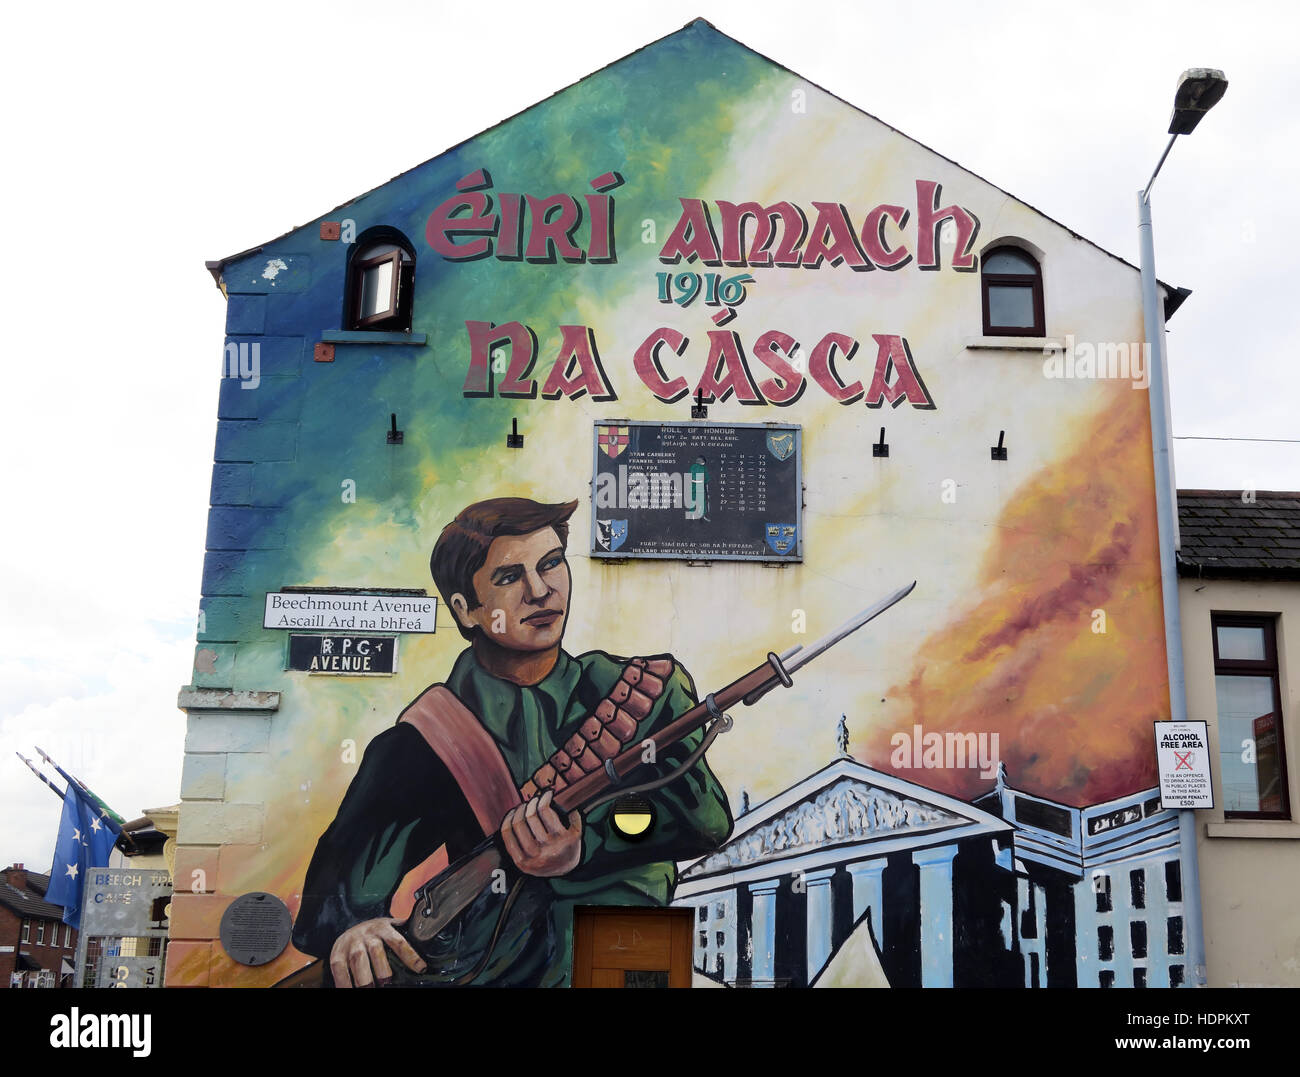 Road,painting,graffiti,resistance,IRA,peace,Northern Ireland,NI,UK,St,street,Eire,Irish,Republic,Irish Republic,conflict,Irish Republican Army,Political Change,RPG Avenue,RPG Ave,Beechmount Avenue,1916 Easter Rising,Beechmount,Beechmount Avenue,1916 Easter Rising,1916,Easter,Rising,GoTonySmith,@HotpixUK,Tony,Smith,UK,GB,Great,Britain,United,Kingdom,Irish,British,Ireland,problem,with,problem with,issue with,NI,Northern,Northern Ireland,Belfast,City,Centre,Art,Artists,the,troubles,The Troubles,Good Friday Agreement,Peace,honour,painting,wall,walls,tribute,republicanism,Fight,Justice,West,Beal,feirste,martyrs,social,tour,tourism,tourists,urban,six,counties,6,backdrop,county,Antrim,occupation,good,Friday,agreement,peace,reconciliation,IRA,terror,terrorists,genocide,Buy Pictures of,Buy Images Of,Images of,Stock Images,Tony Smith,United Kingdom,Great Britain,British Isles,republican cause